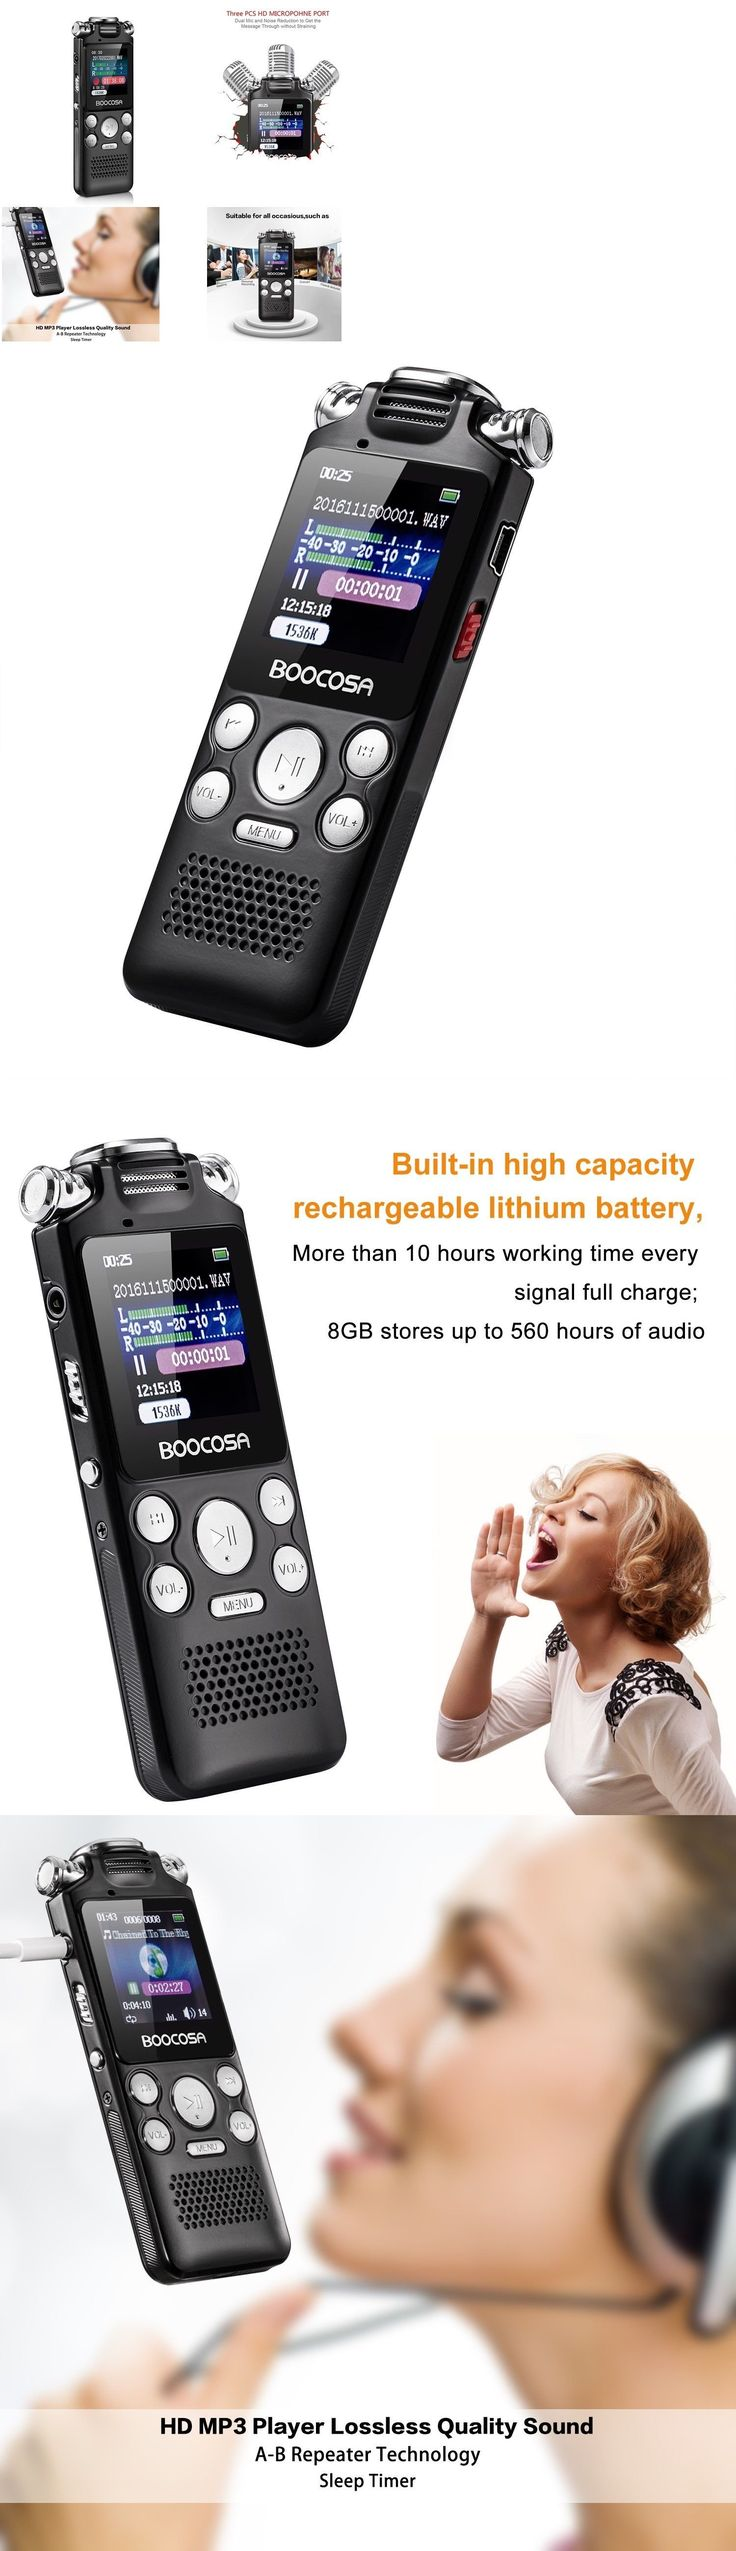 Voice Recorders Dictaphones: Digital Voice Audio Sound Recorder Portable Mp3 Music Dictaphone Sleep Timer 8Gb -> BUY IT NOW ONLY: $42.03 on eBay!